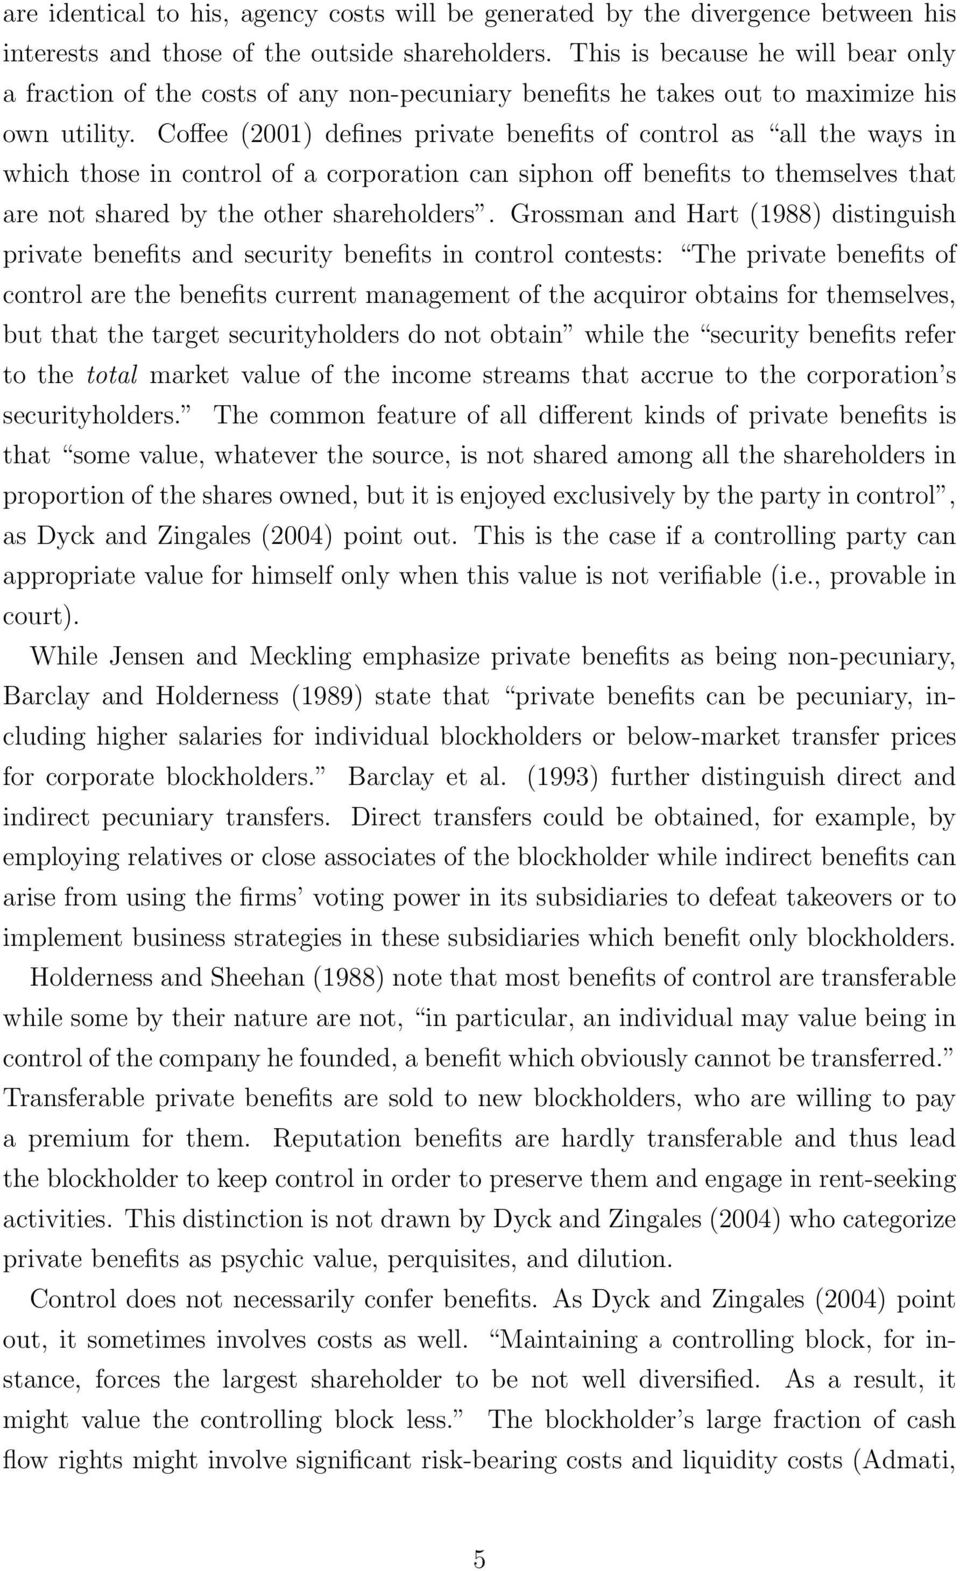 Coffee (2001) defines private benefits of control as all the ways in which those in control of a corporation can siphon off benefits to themselves that are not shared by the other shareholders.